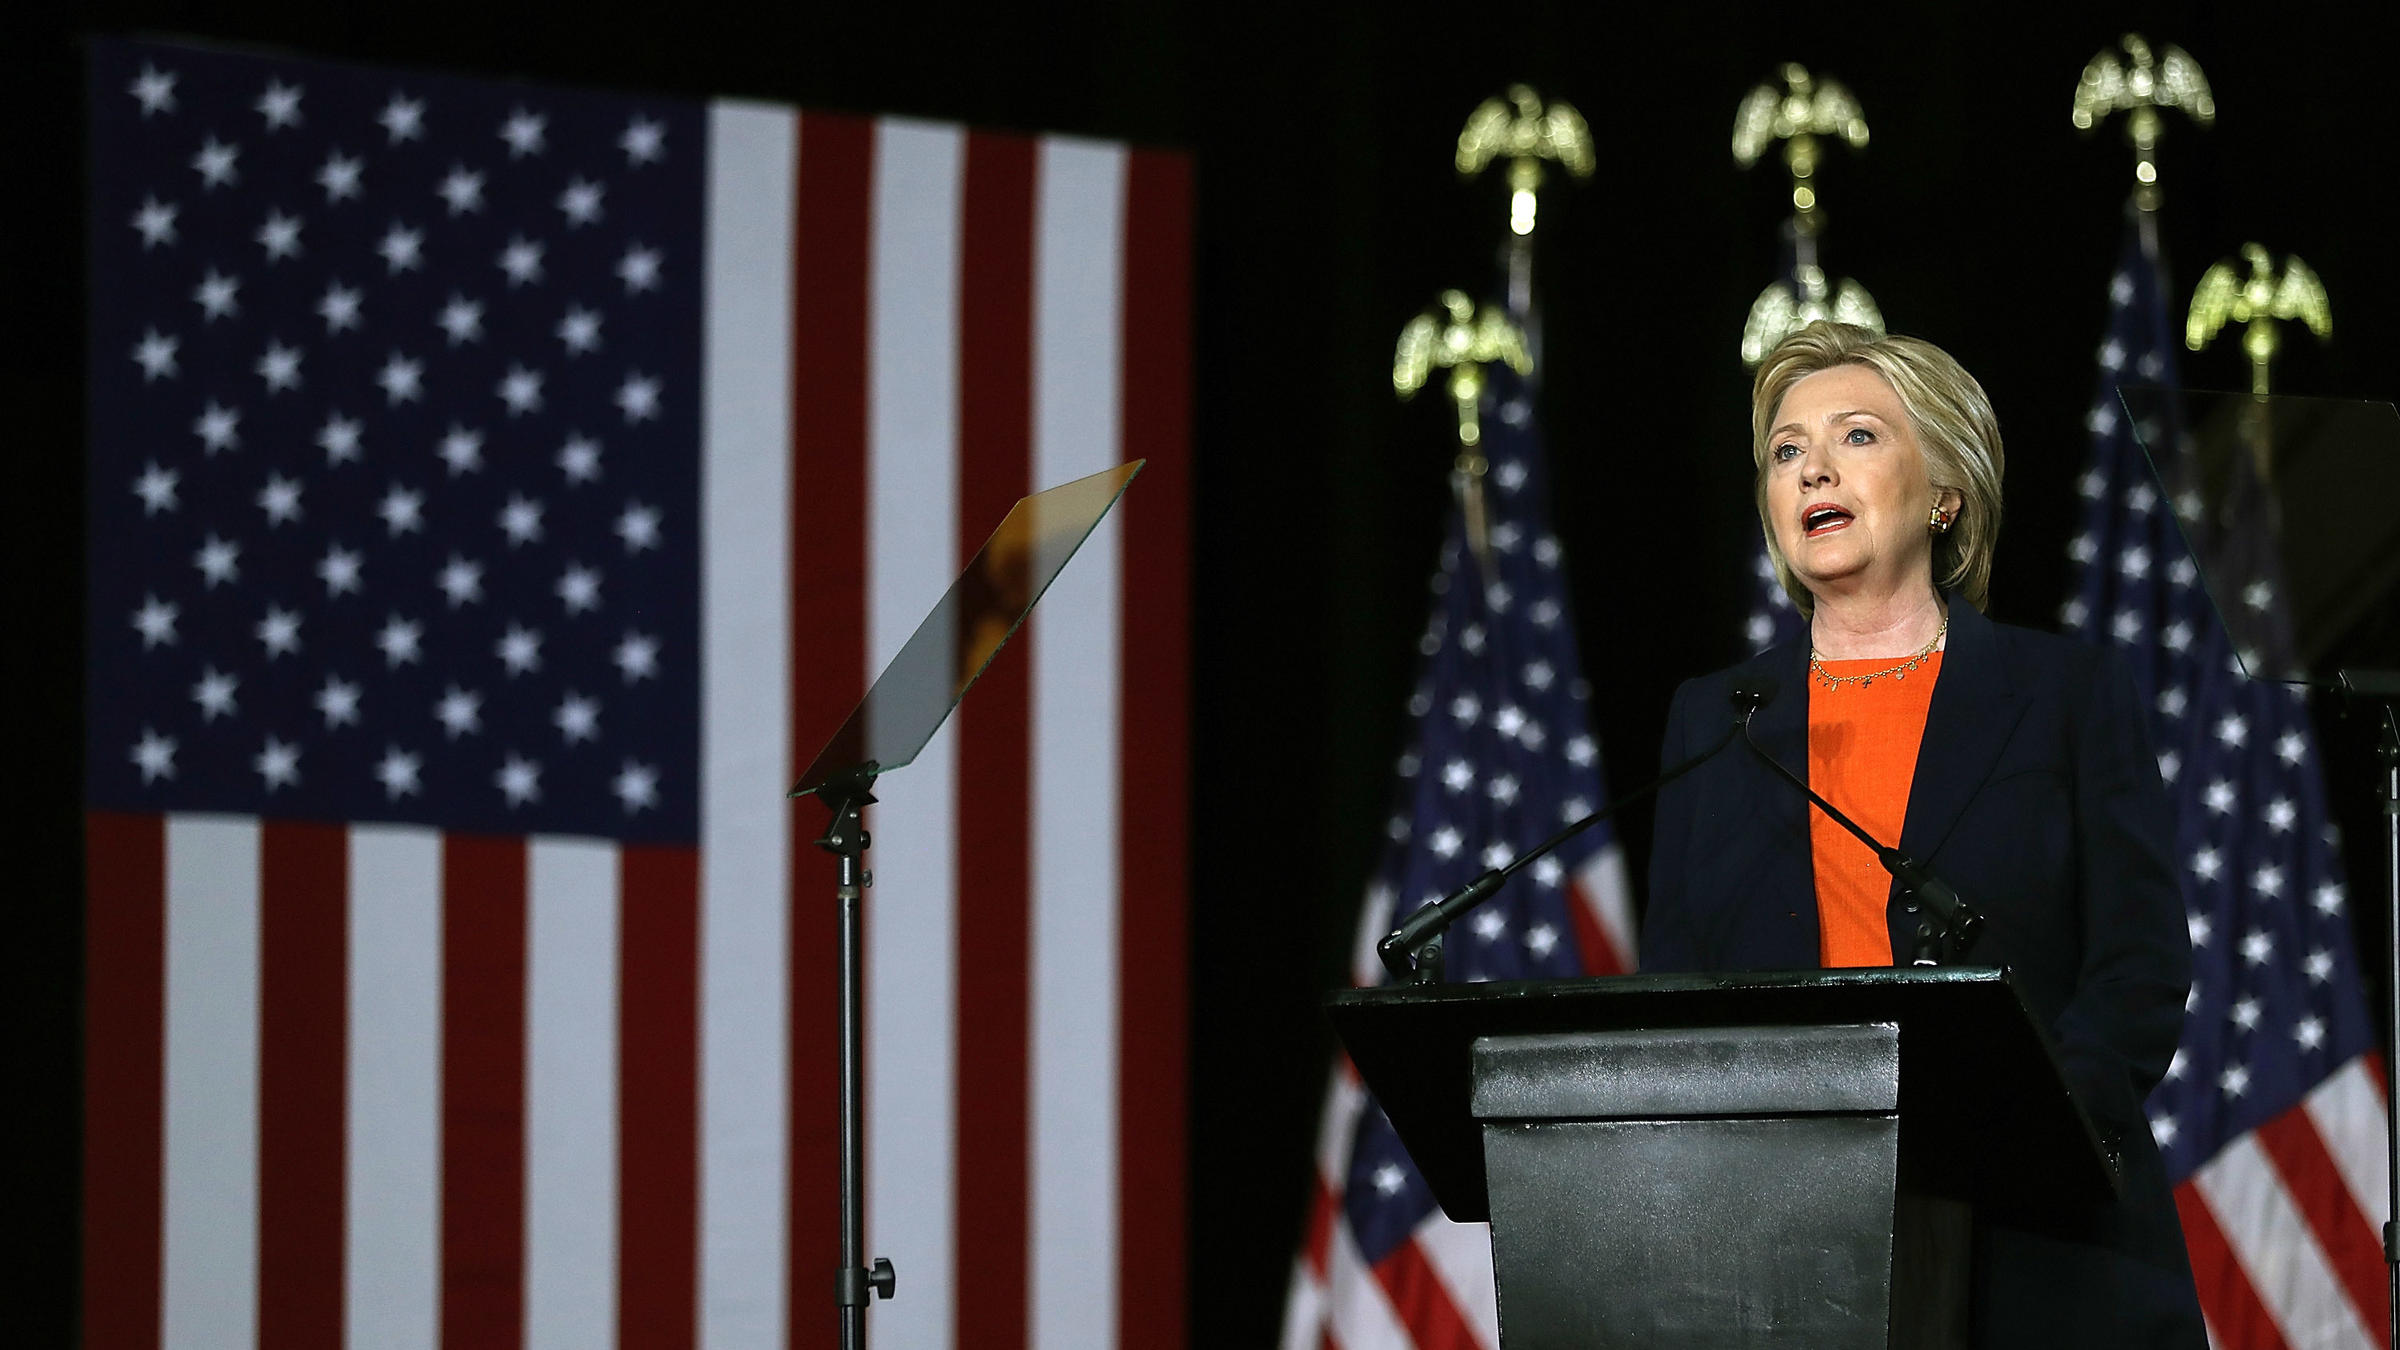 Democratic Presidential Candidate Hillary Clinton Delivered A National Security Sch In San Go That Harshly Criticized Republican Donald